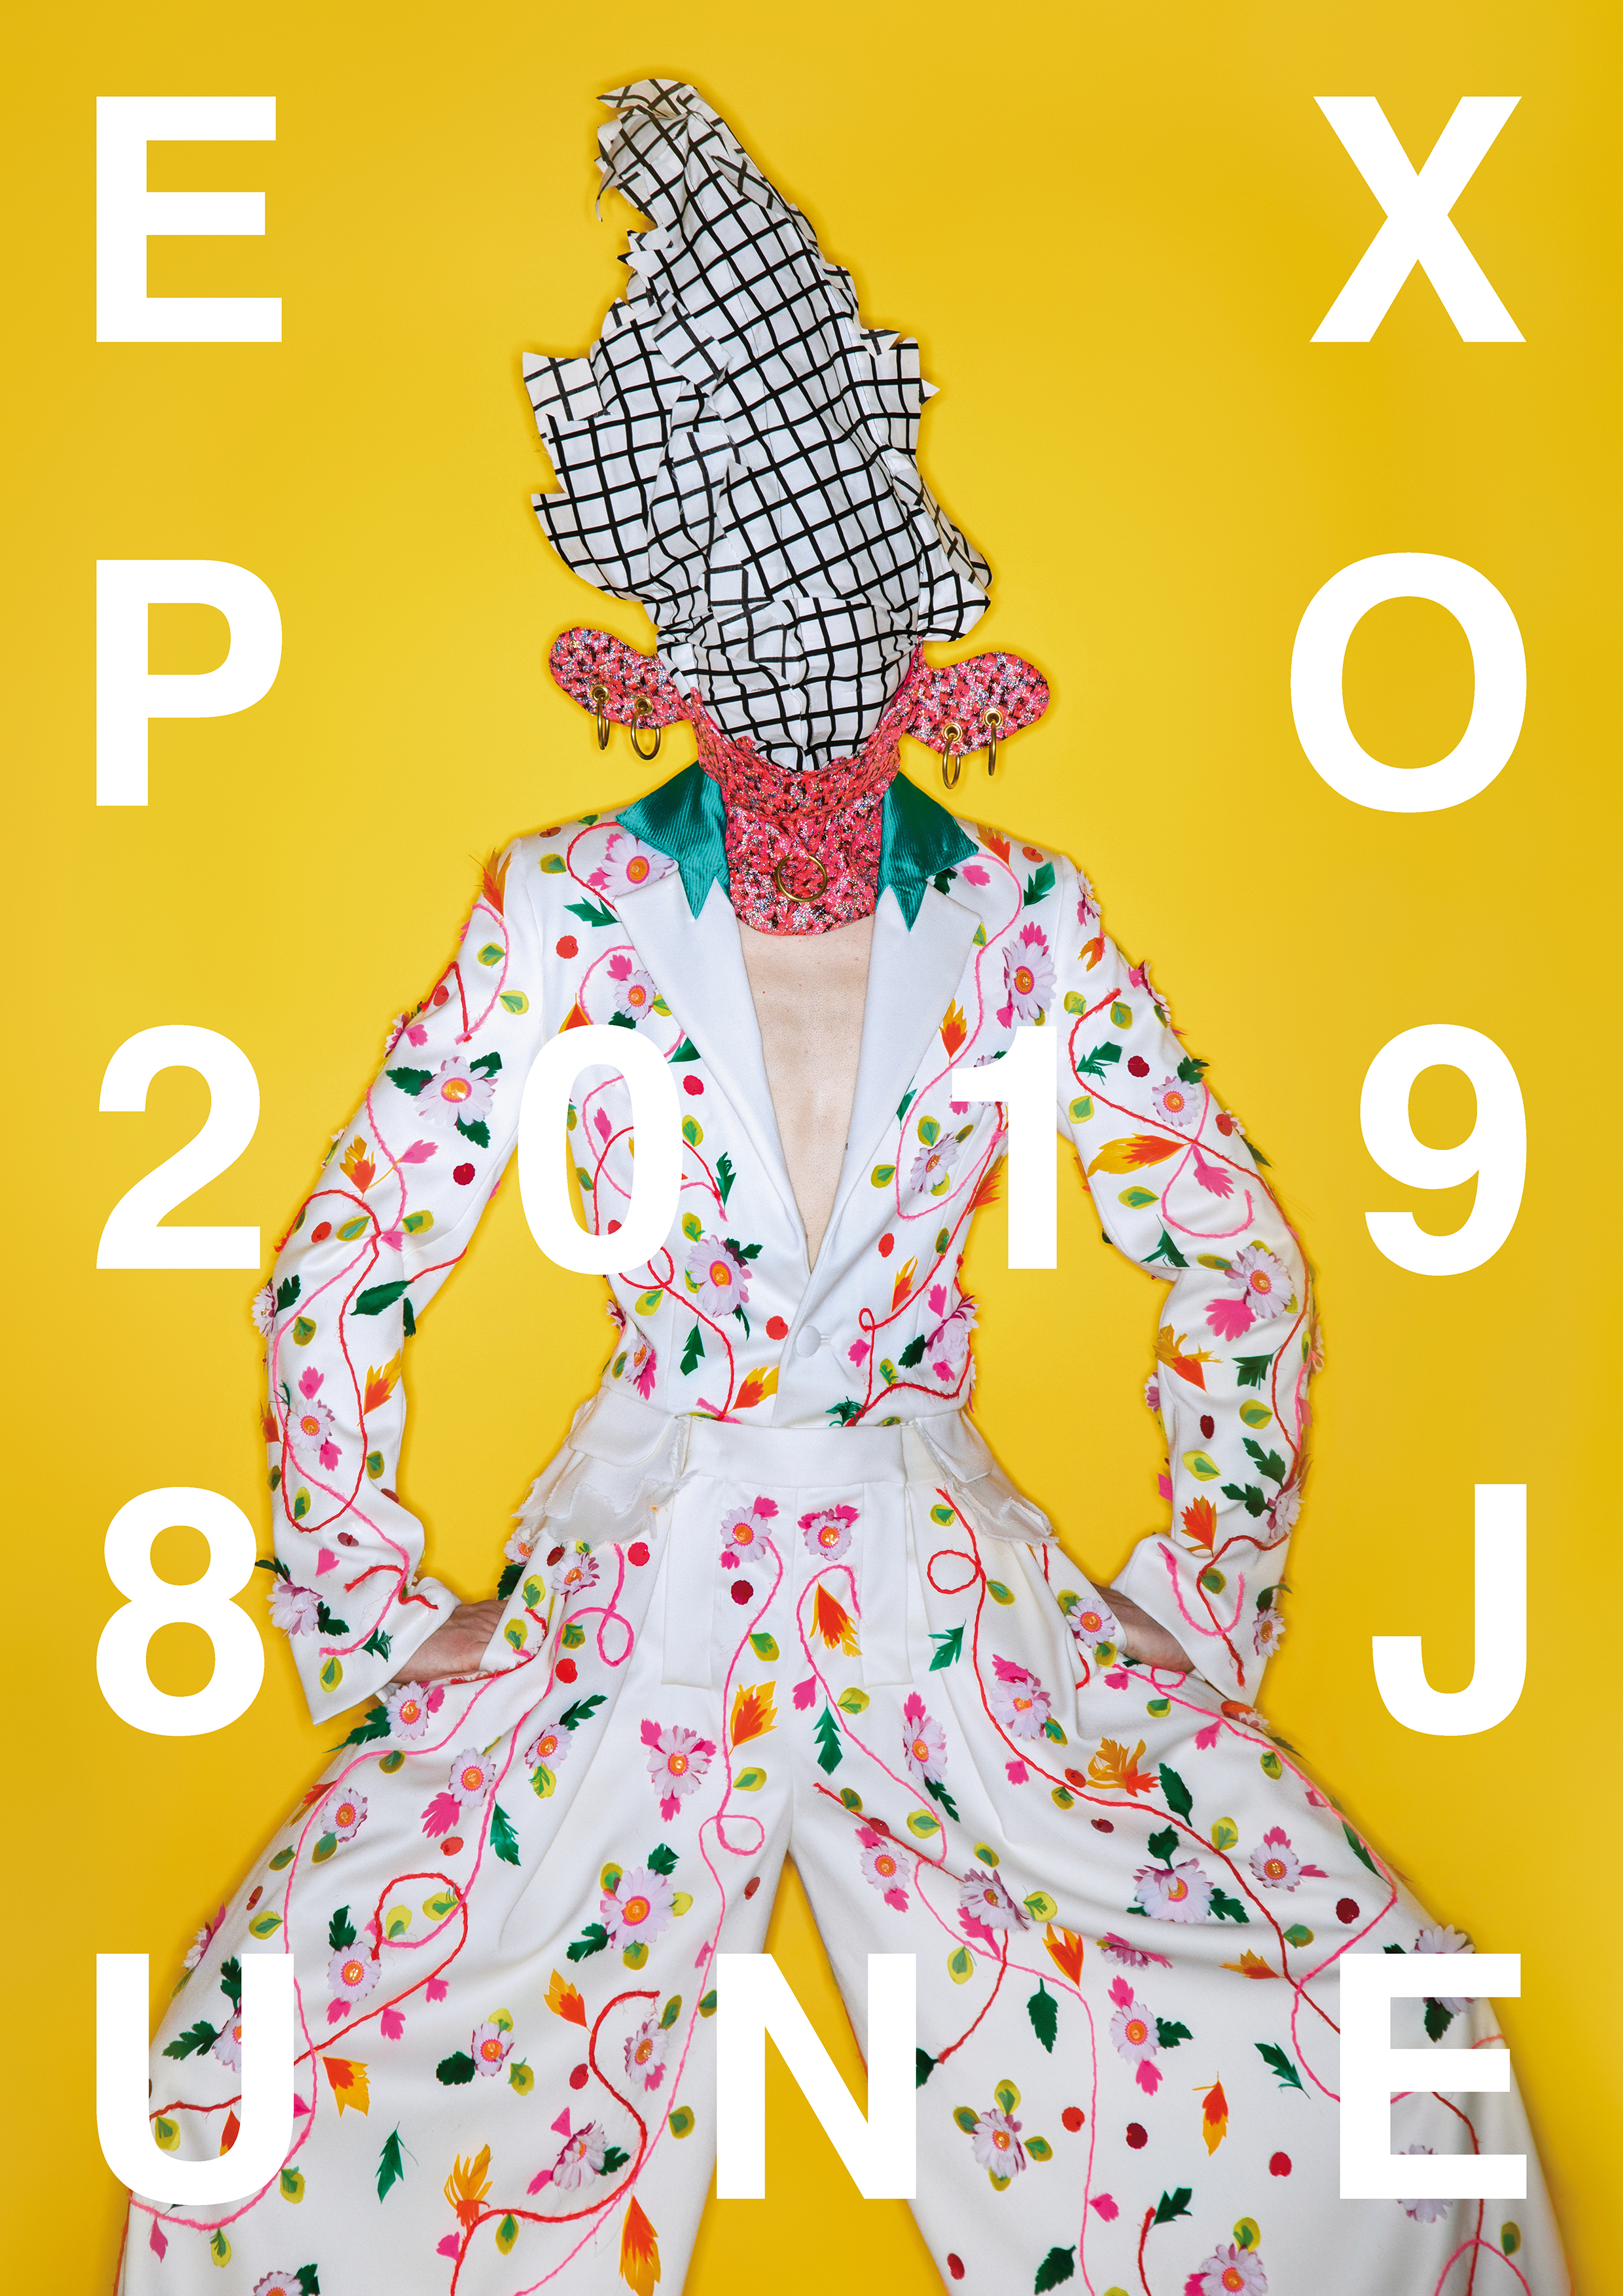 Image - Production: Walter Van Beirendonck & Dirk Van Saene, Photography: Ronald Stoops, Outfit: Brandon Wen, Model: Fabian Leinweber, Photo assistance: Stef & Sander, Graphic design: Paul Boudens